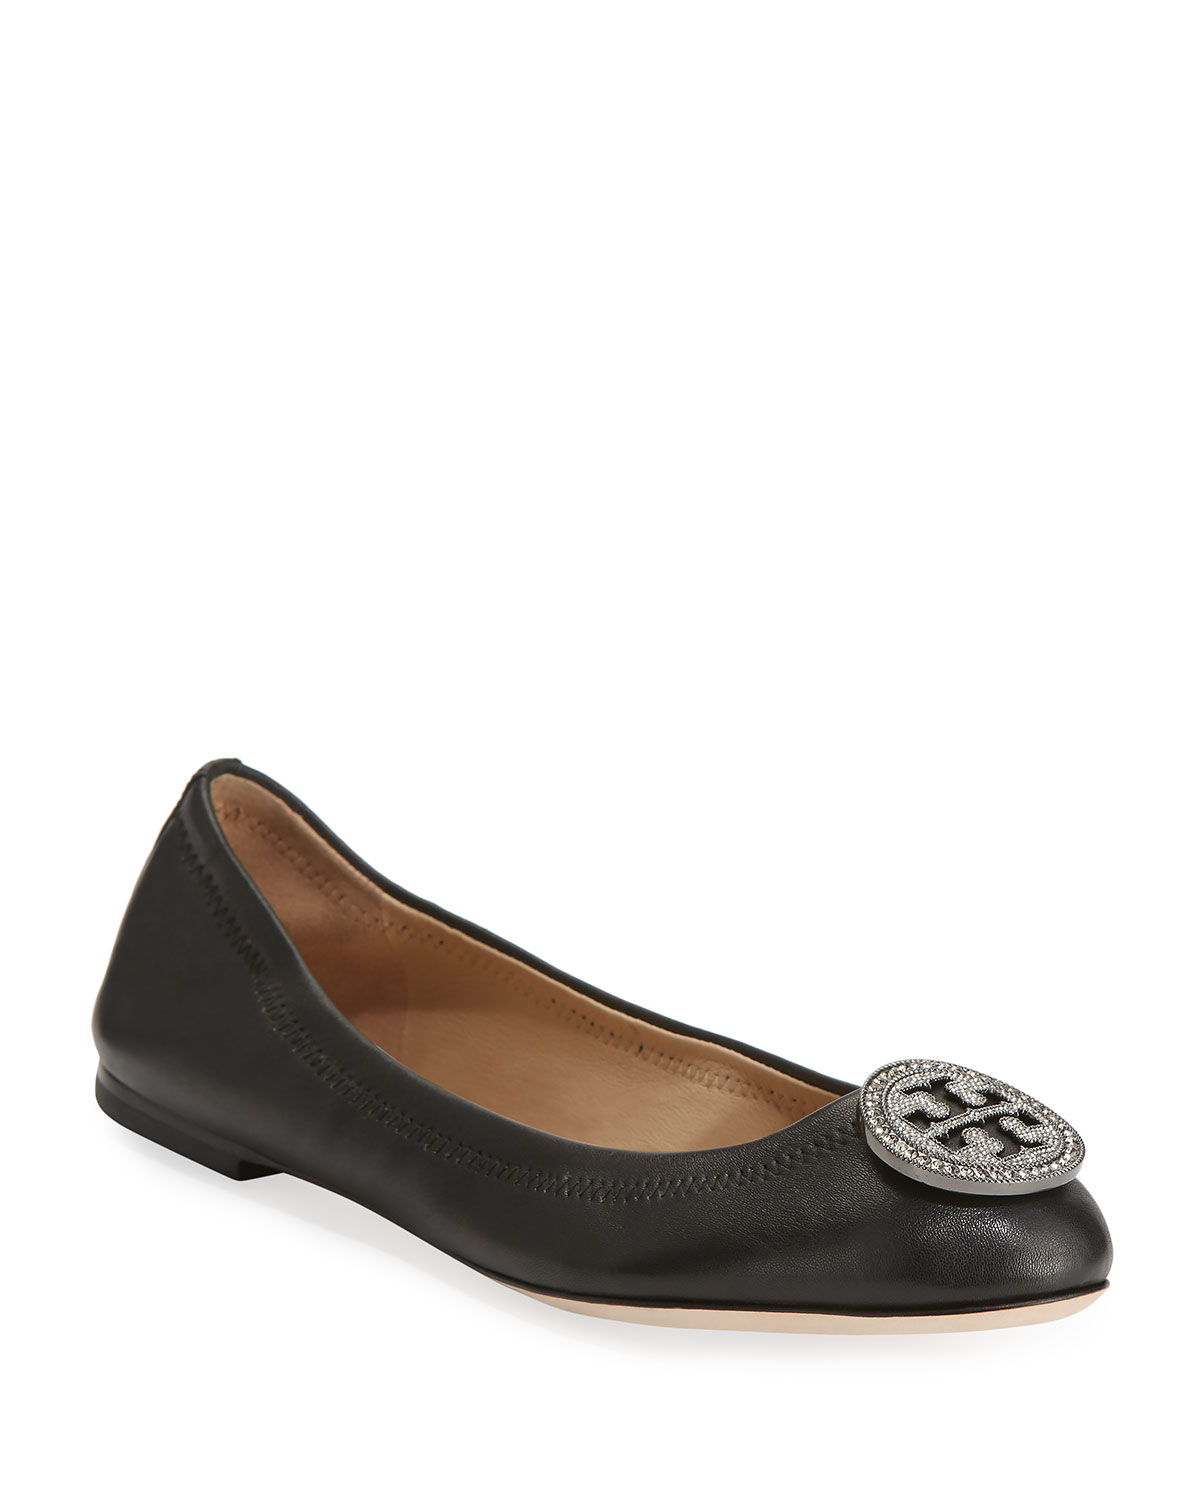 dce34f75942f Tory Burch Liana Embellished Ballet Flats